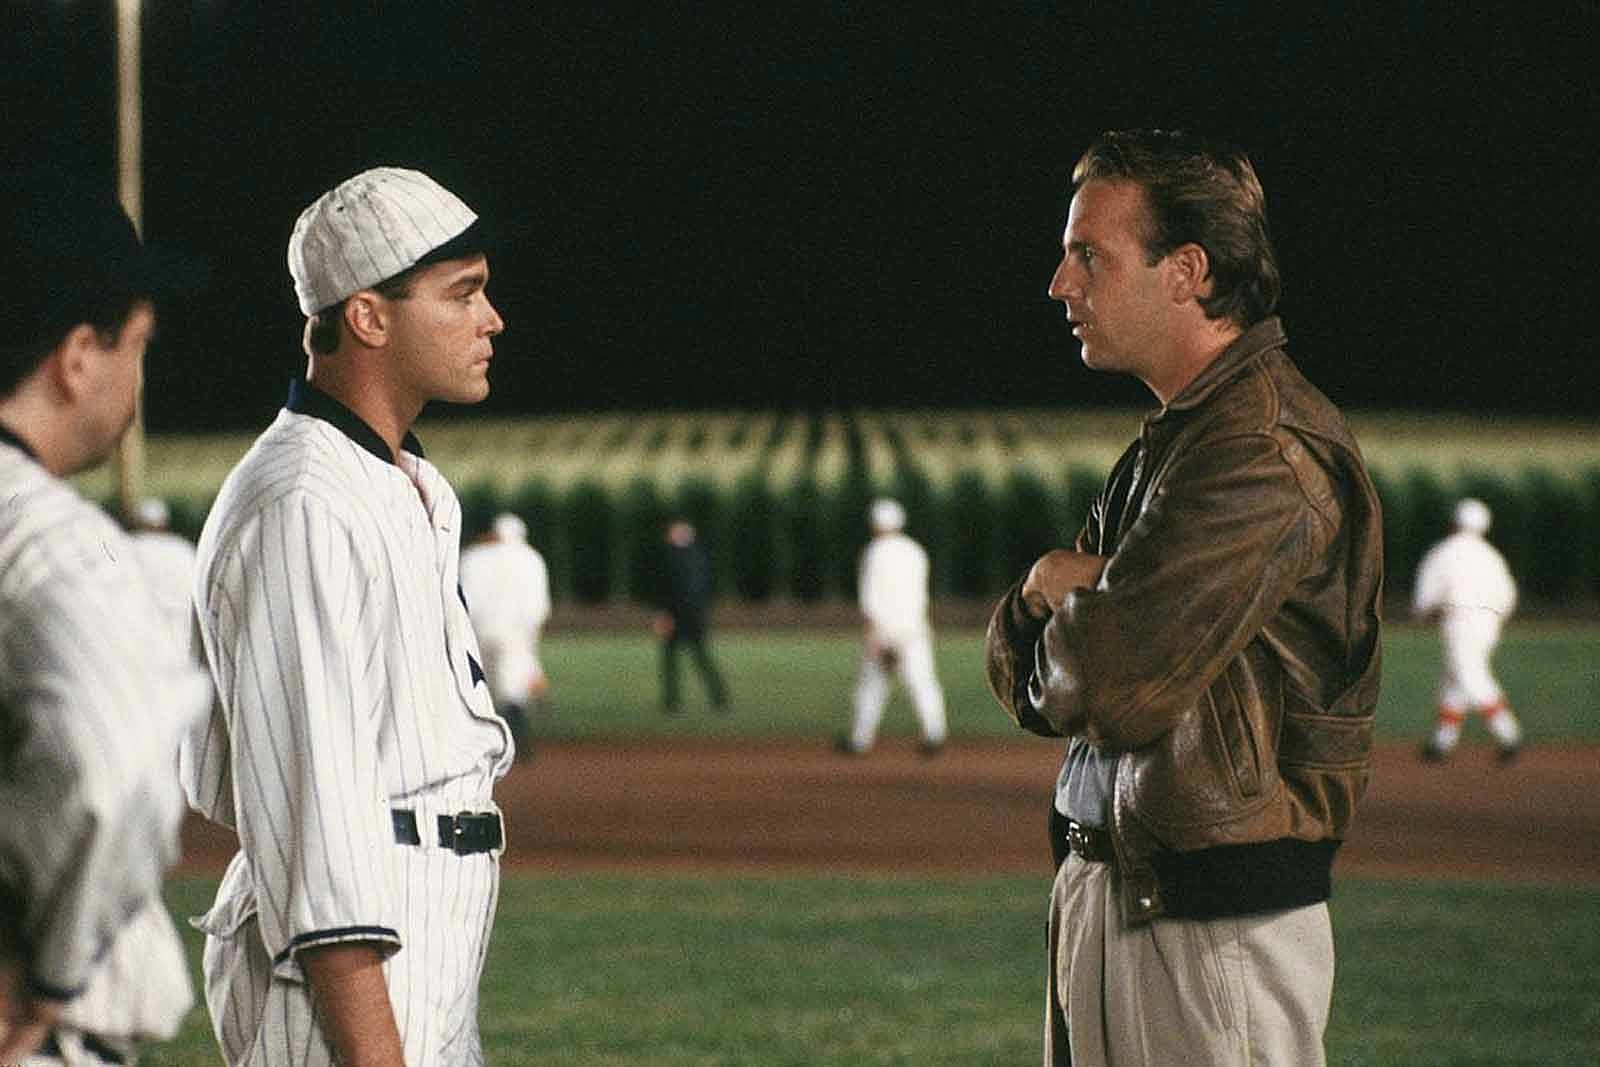 How a Director With a Dream Made 'Field of Dreams'